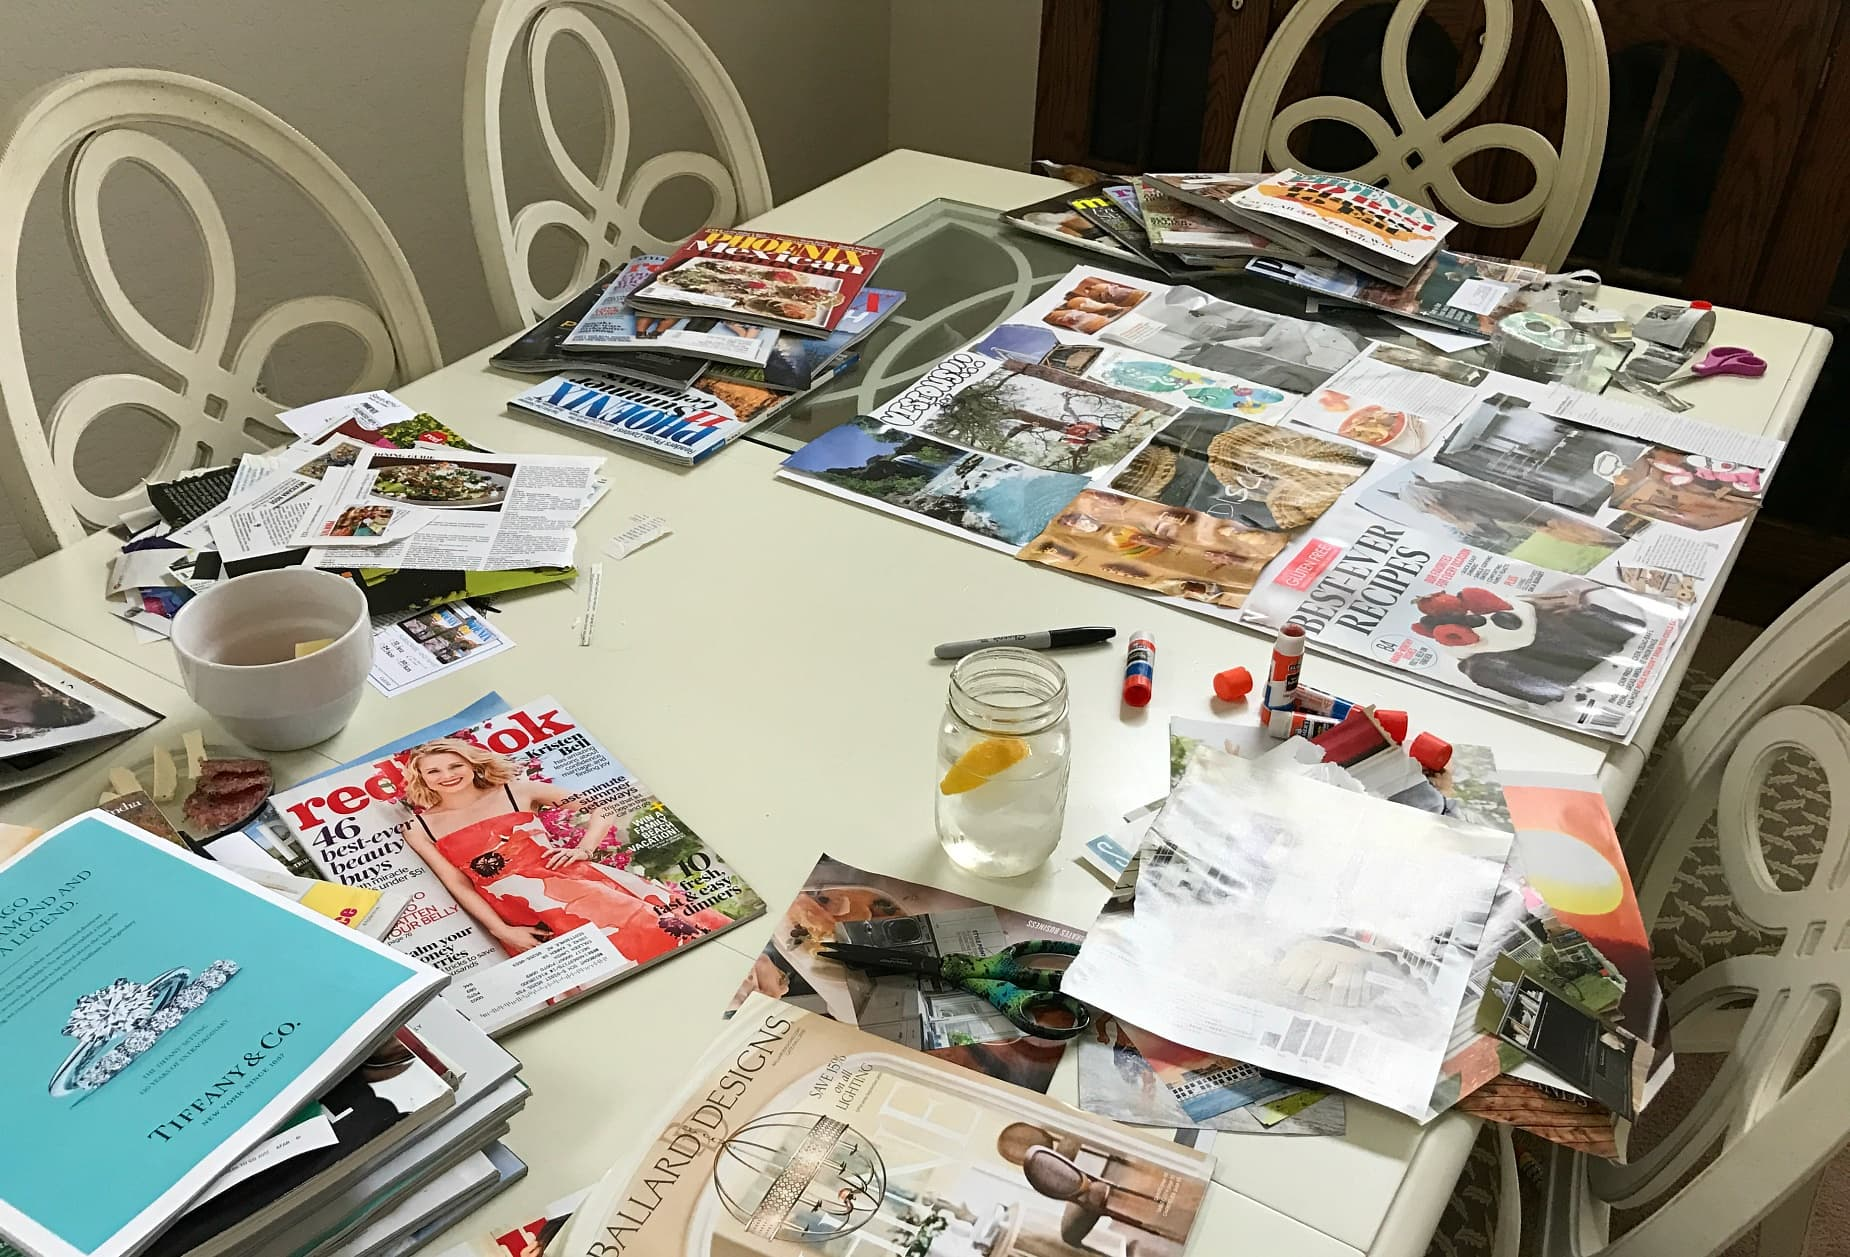 It's easy and fulfilling to host a vision board party